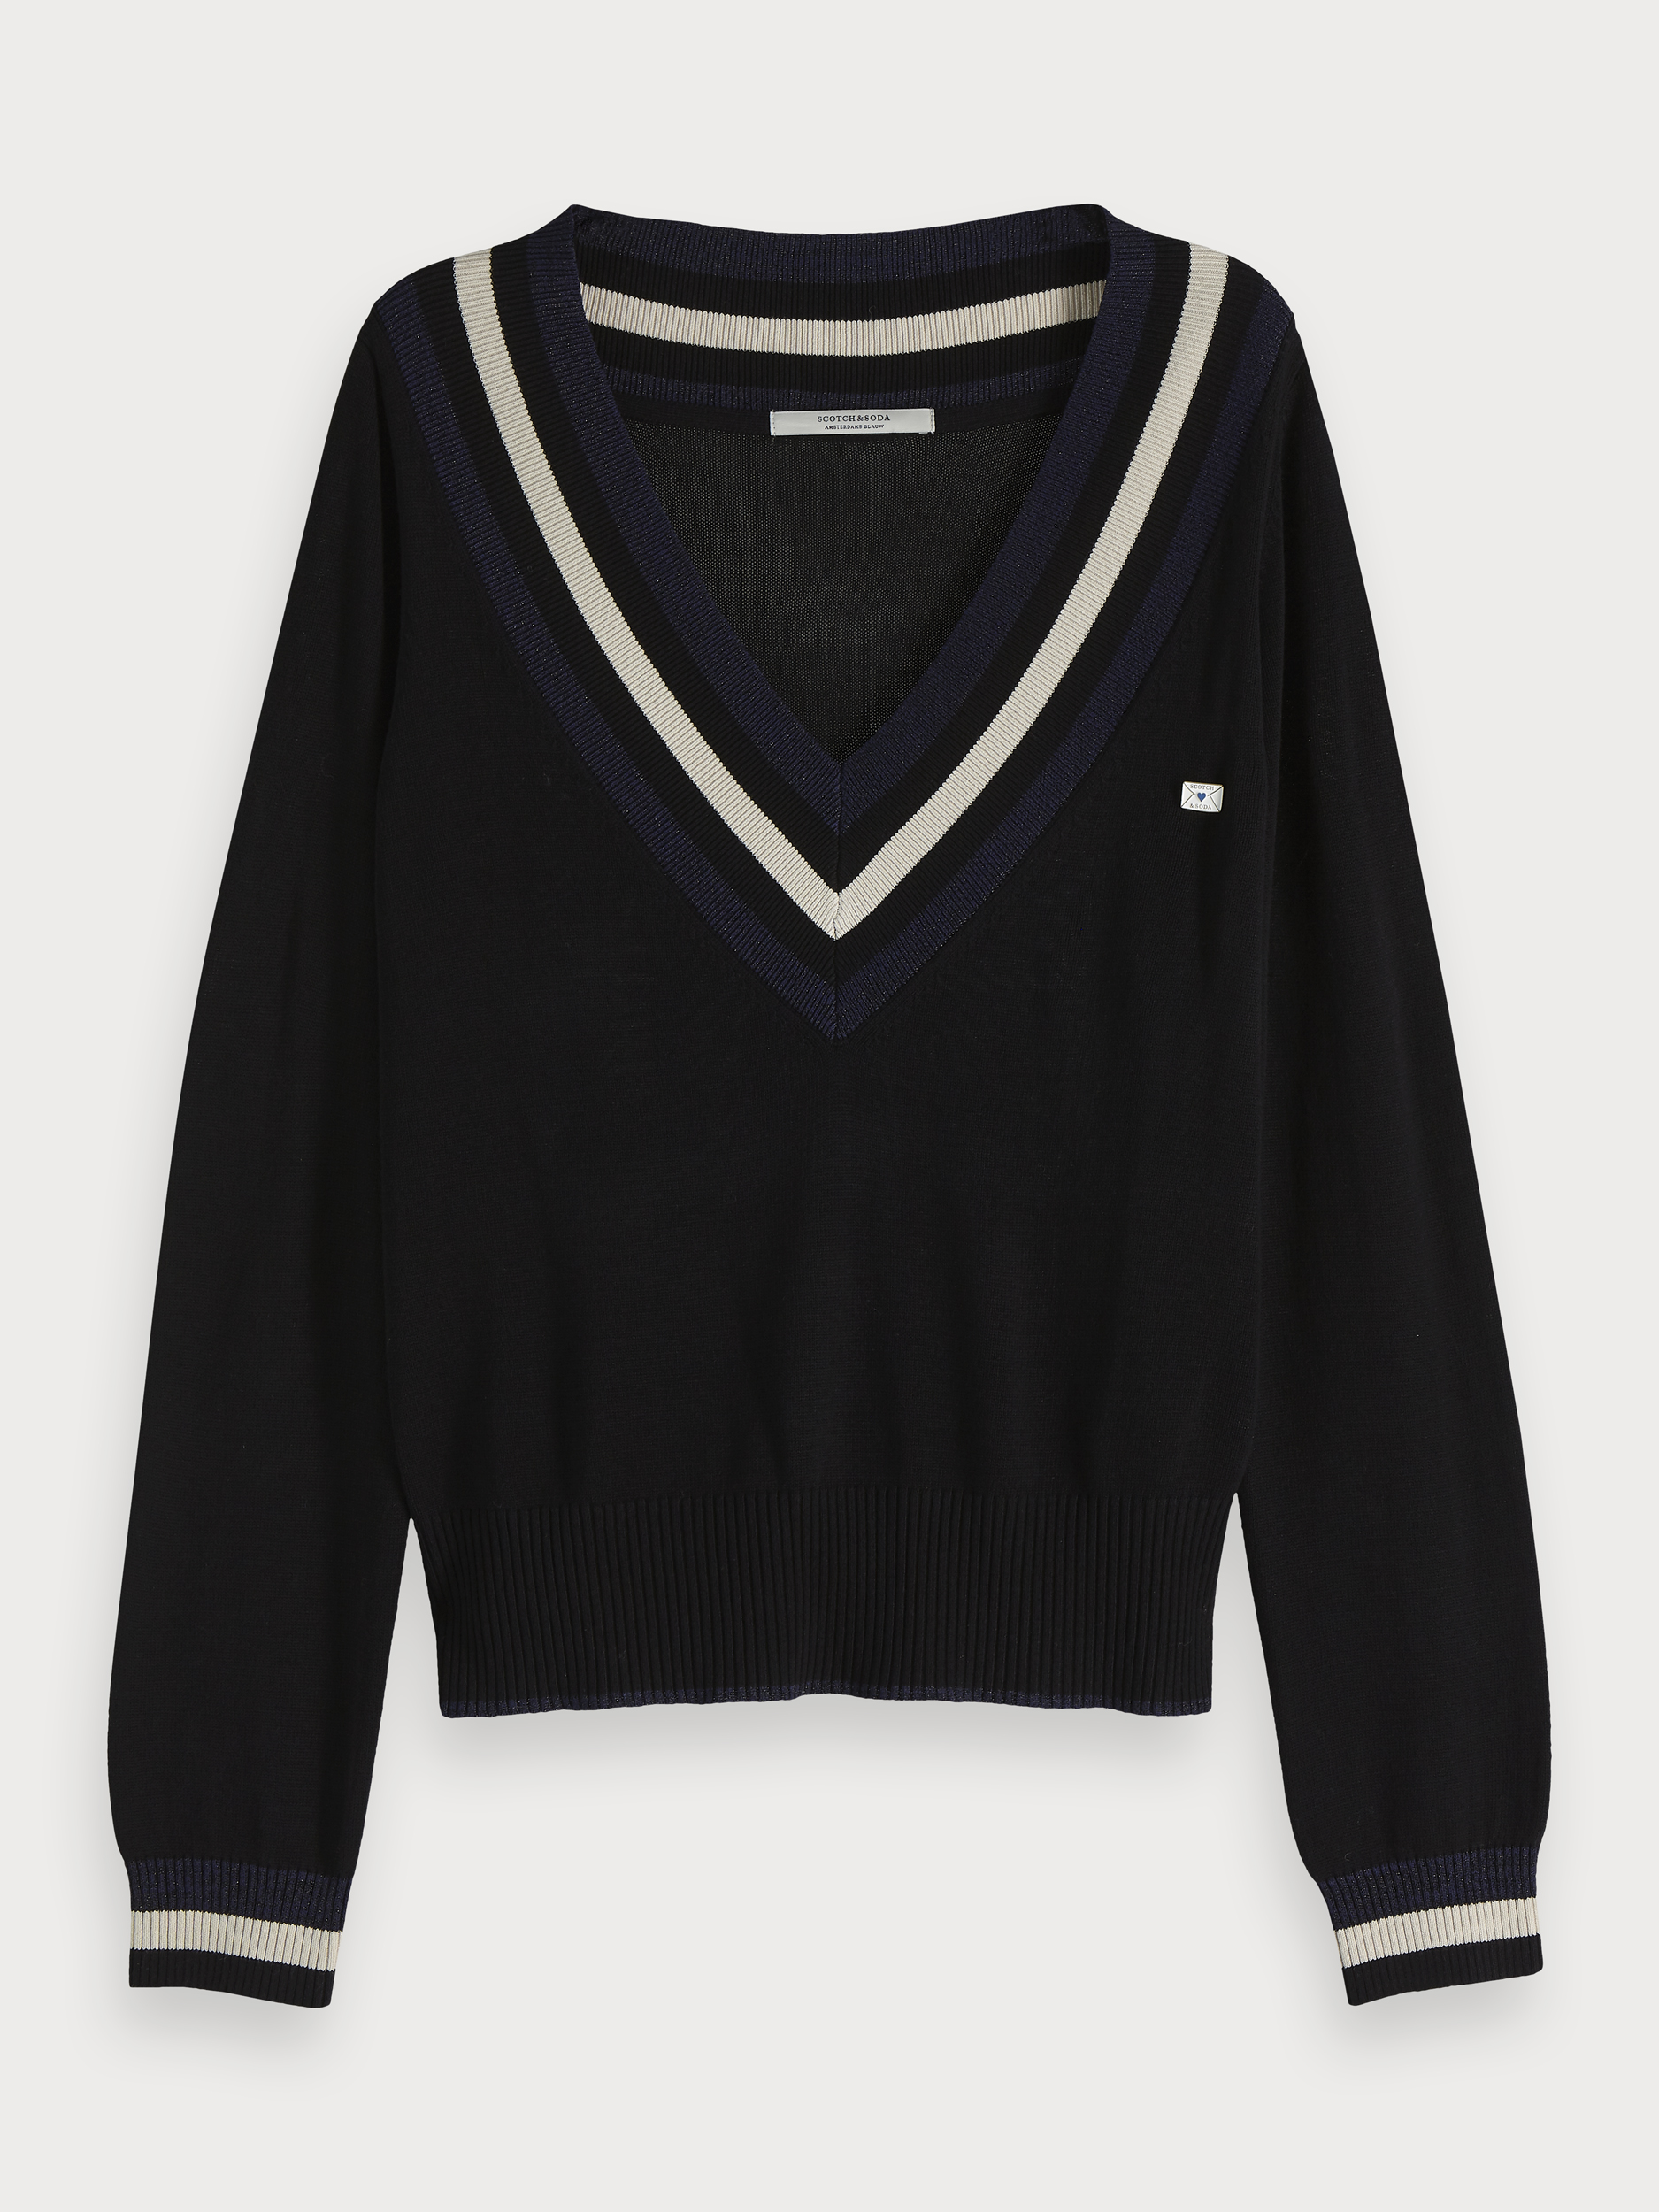 Pullovers for women